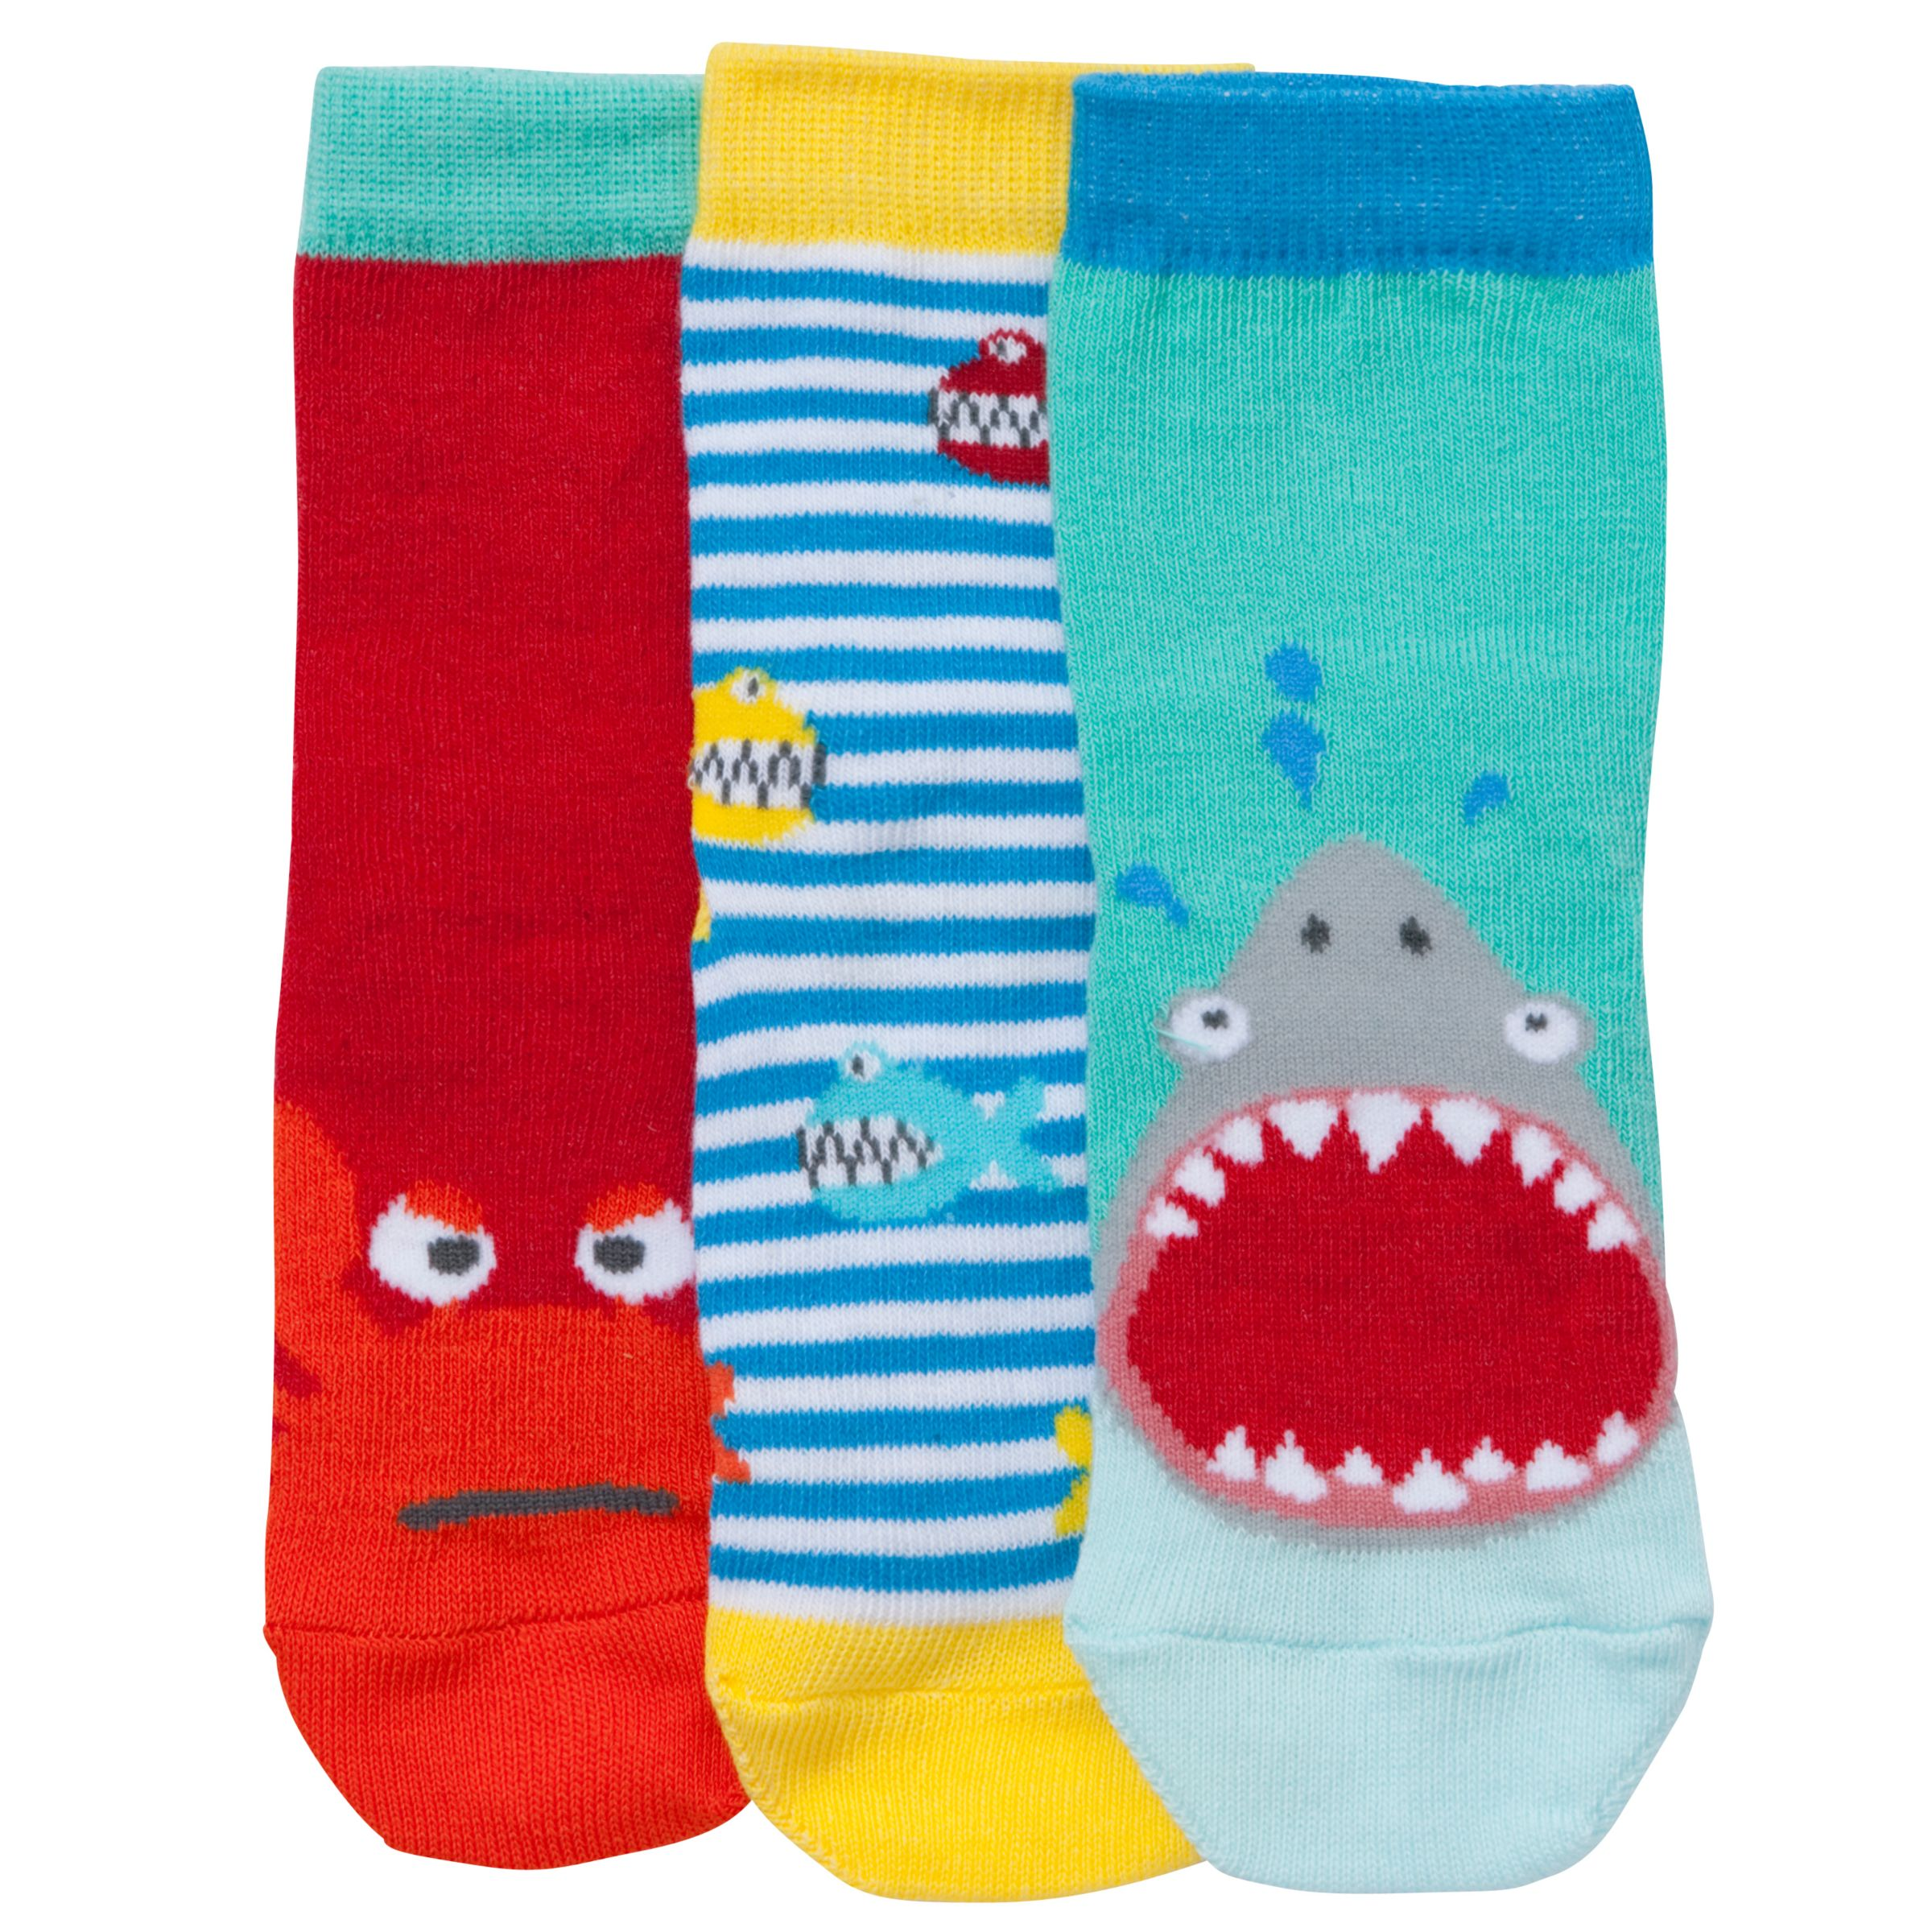 John Lewis Boy Shark Toes Socks, Pack of 3, Multi